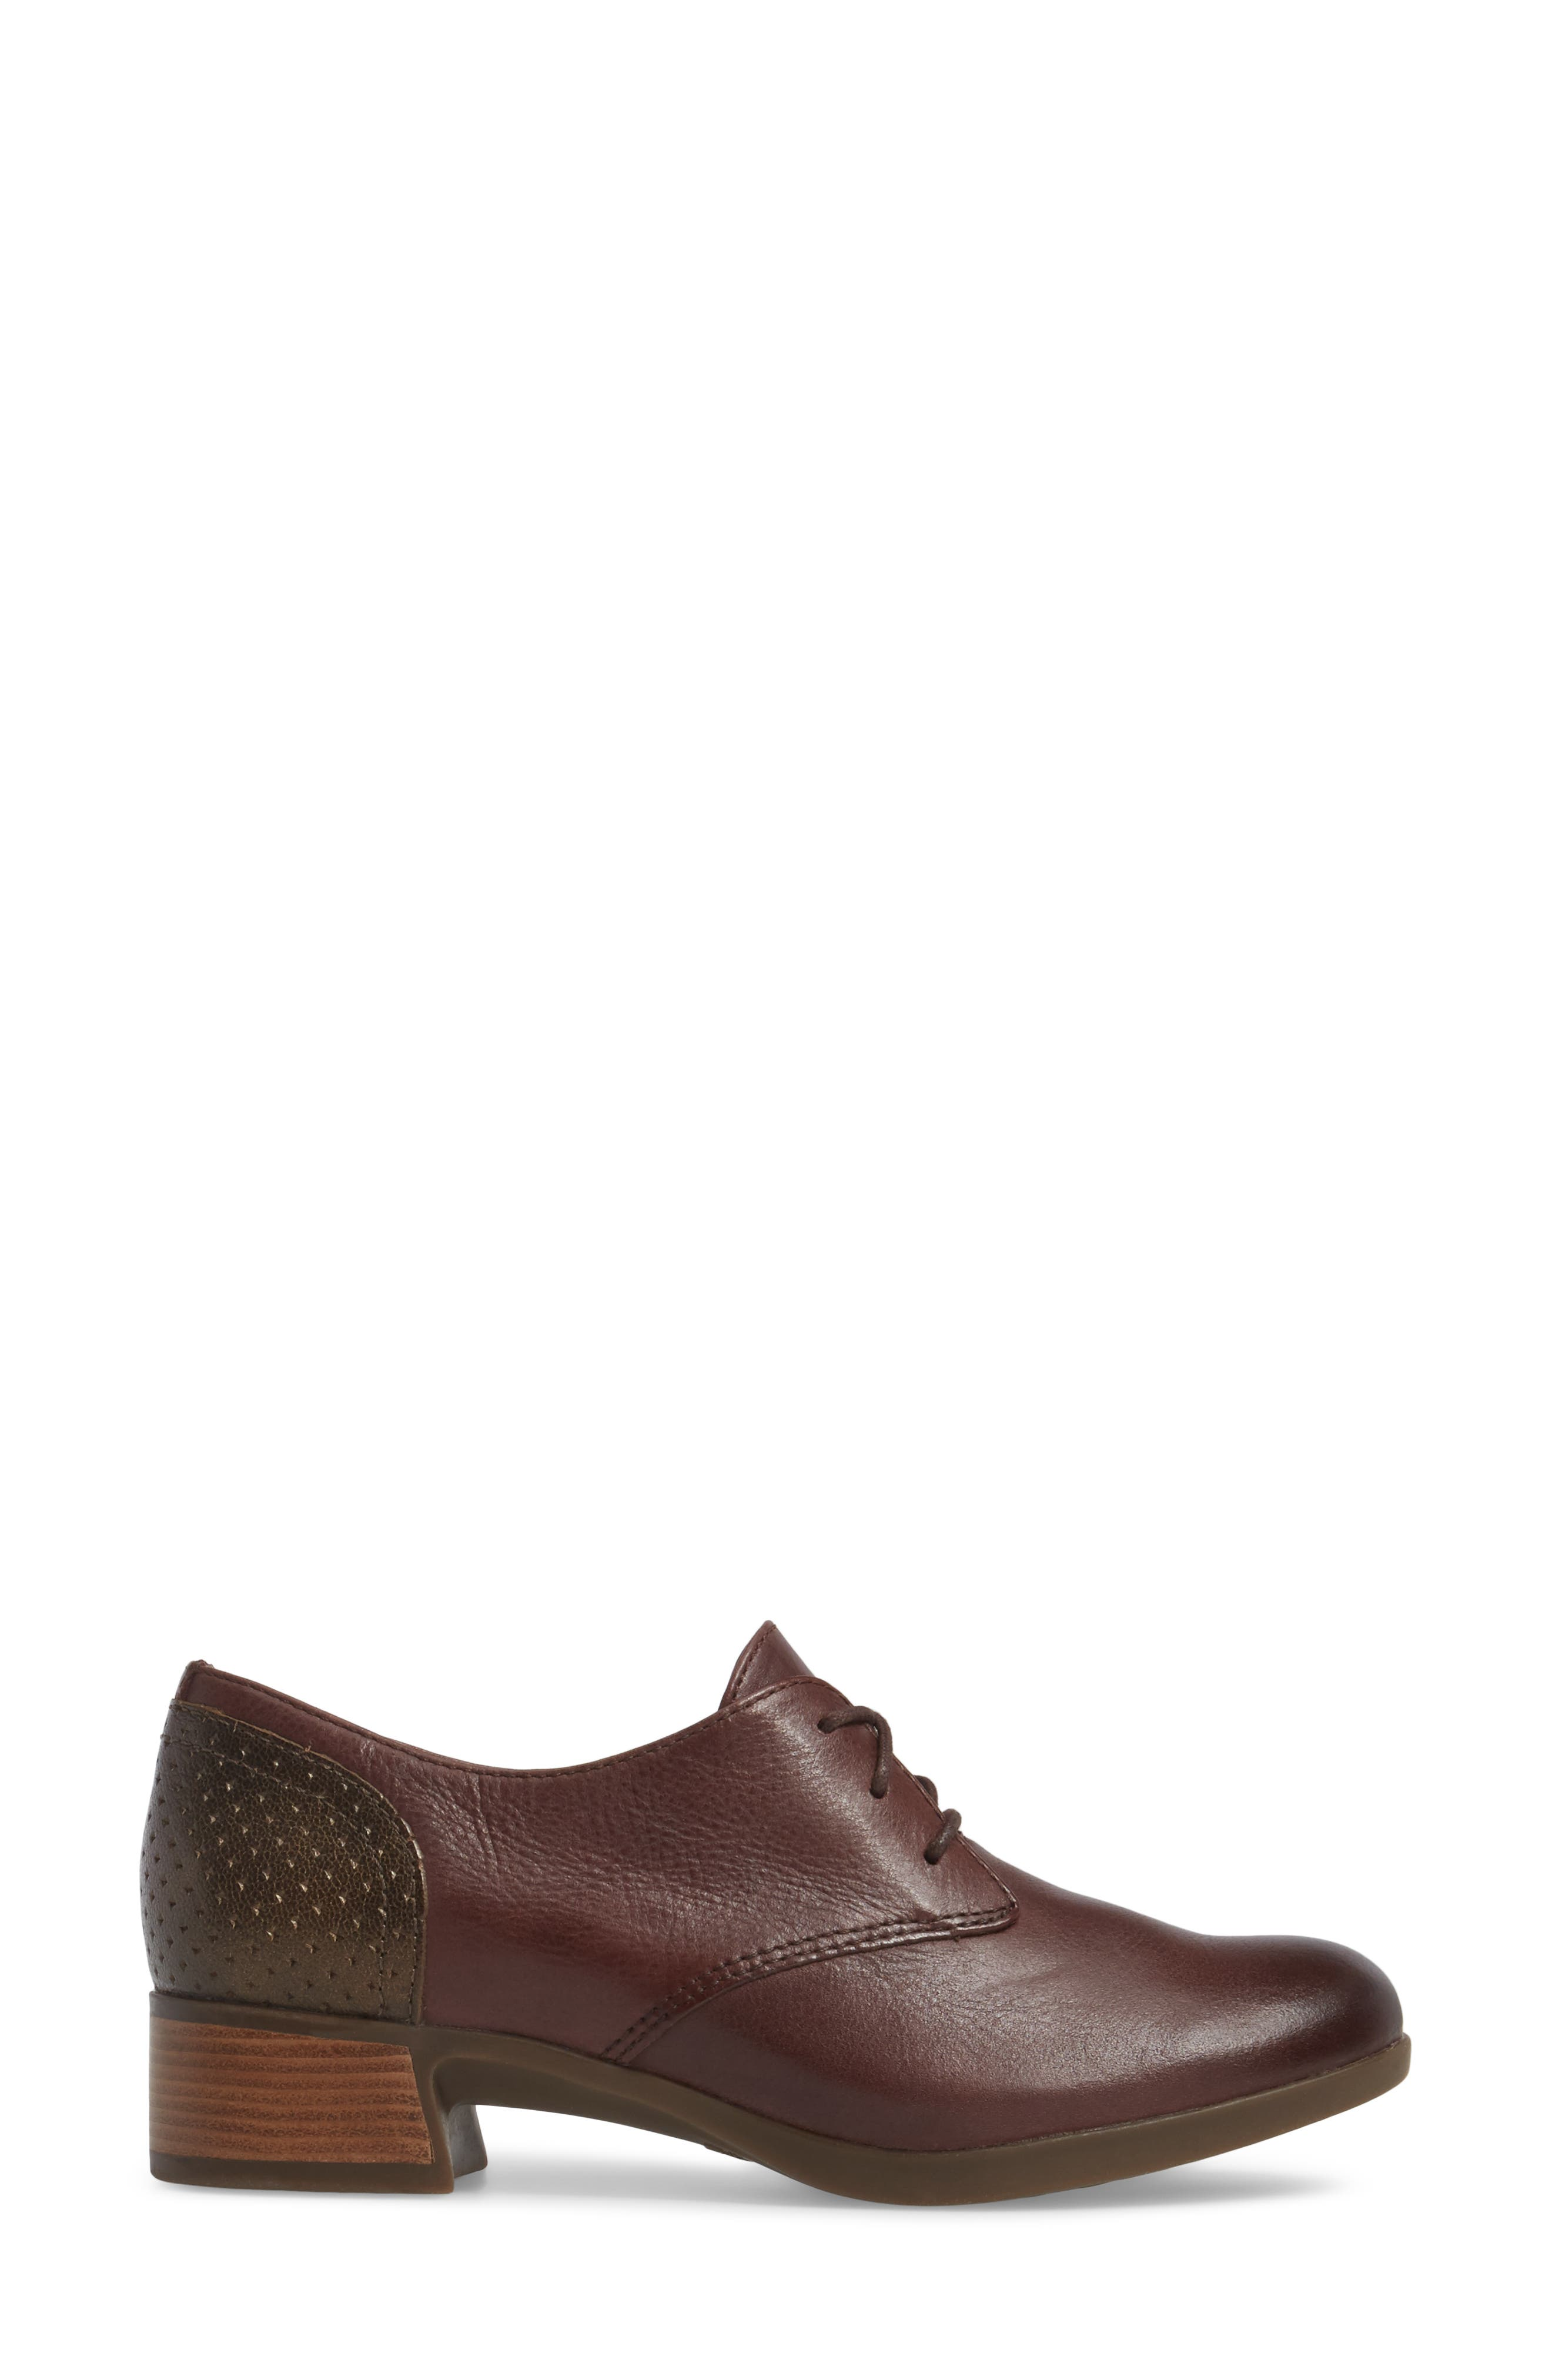 'Louise' Round Toe Derby,                             Alternate thumbnail 3, color,                             WINE BURNISHED LEATHER